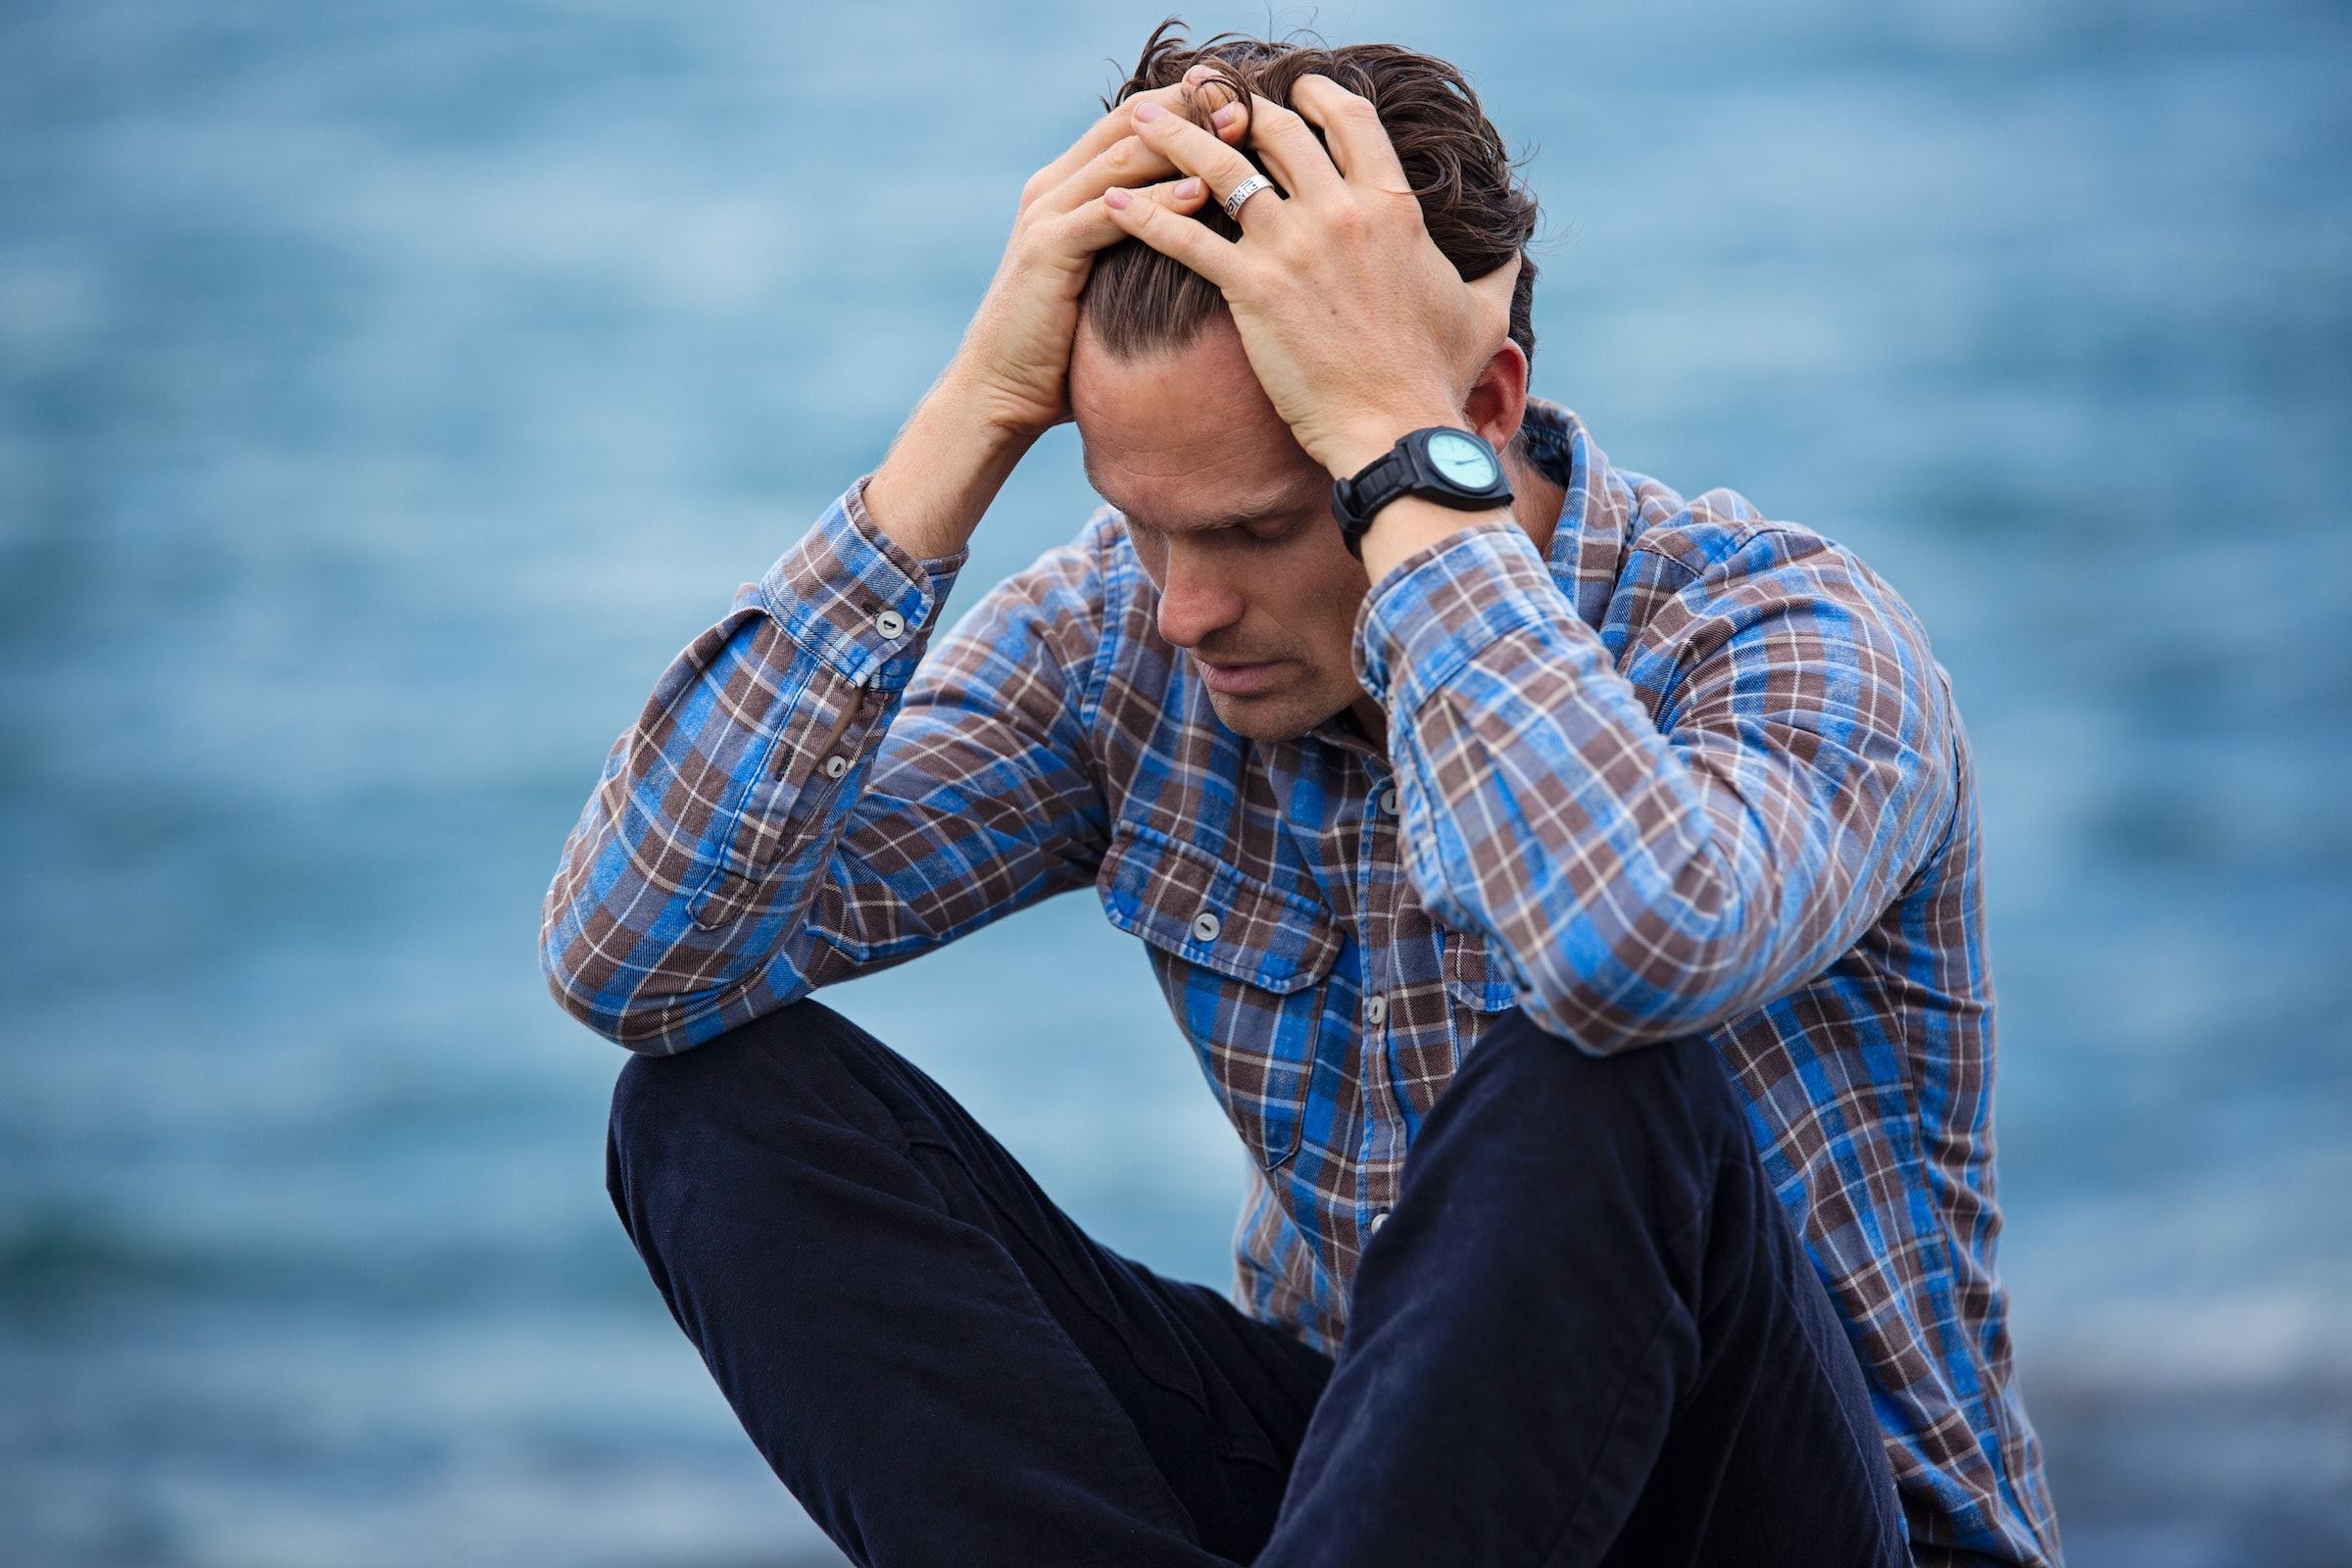 Frustrated man sitting down with his head in his hands on a blue background